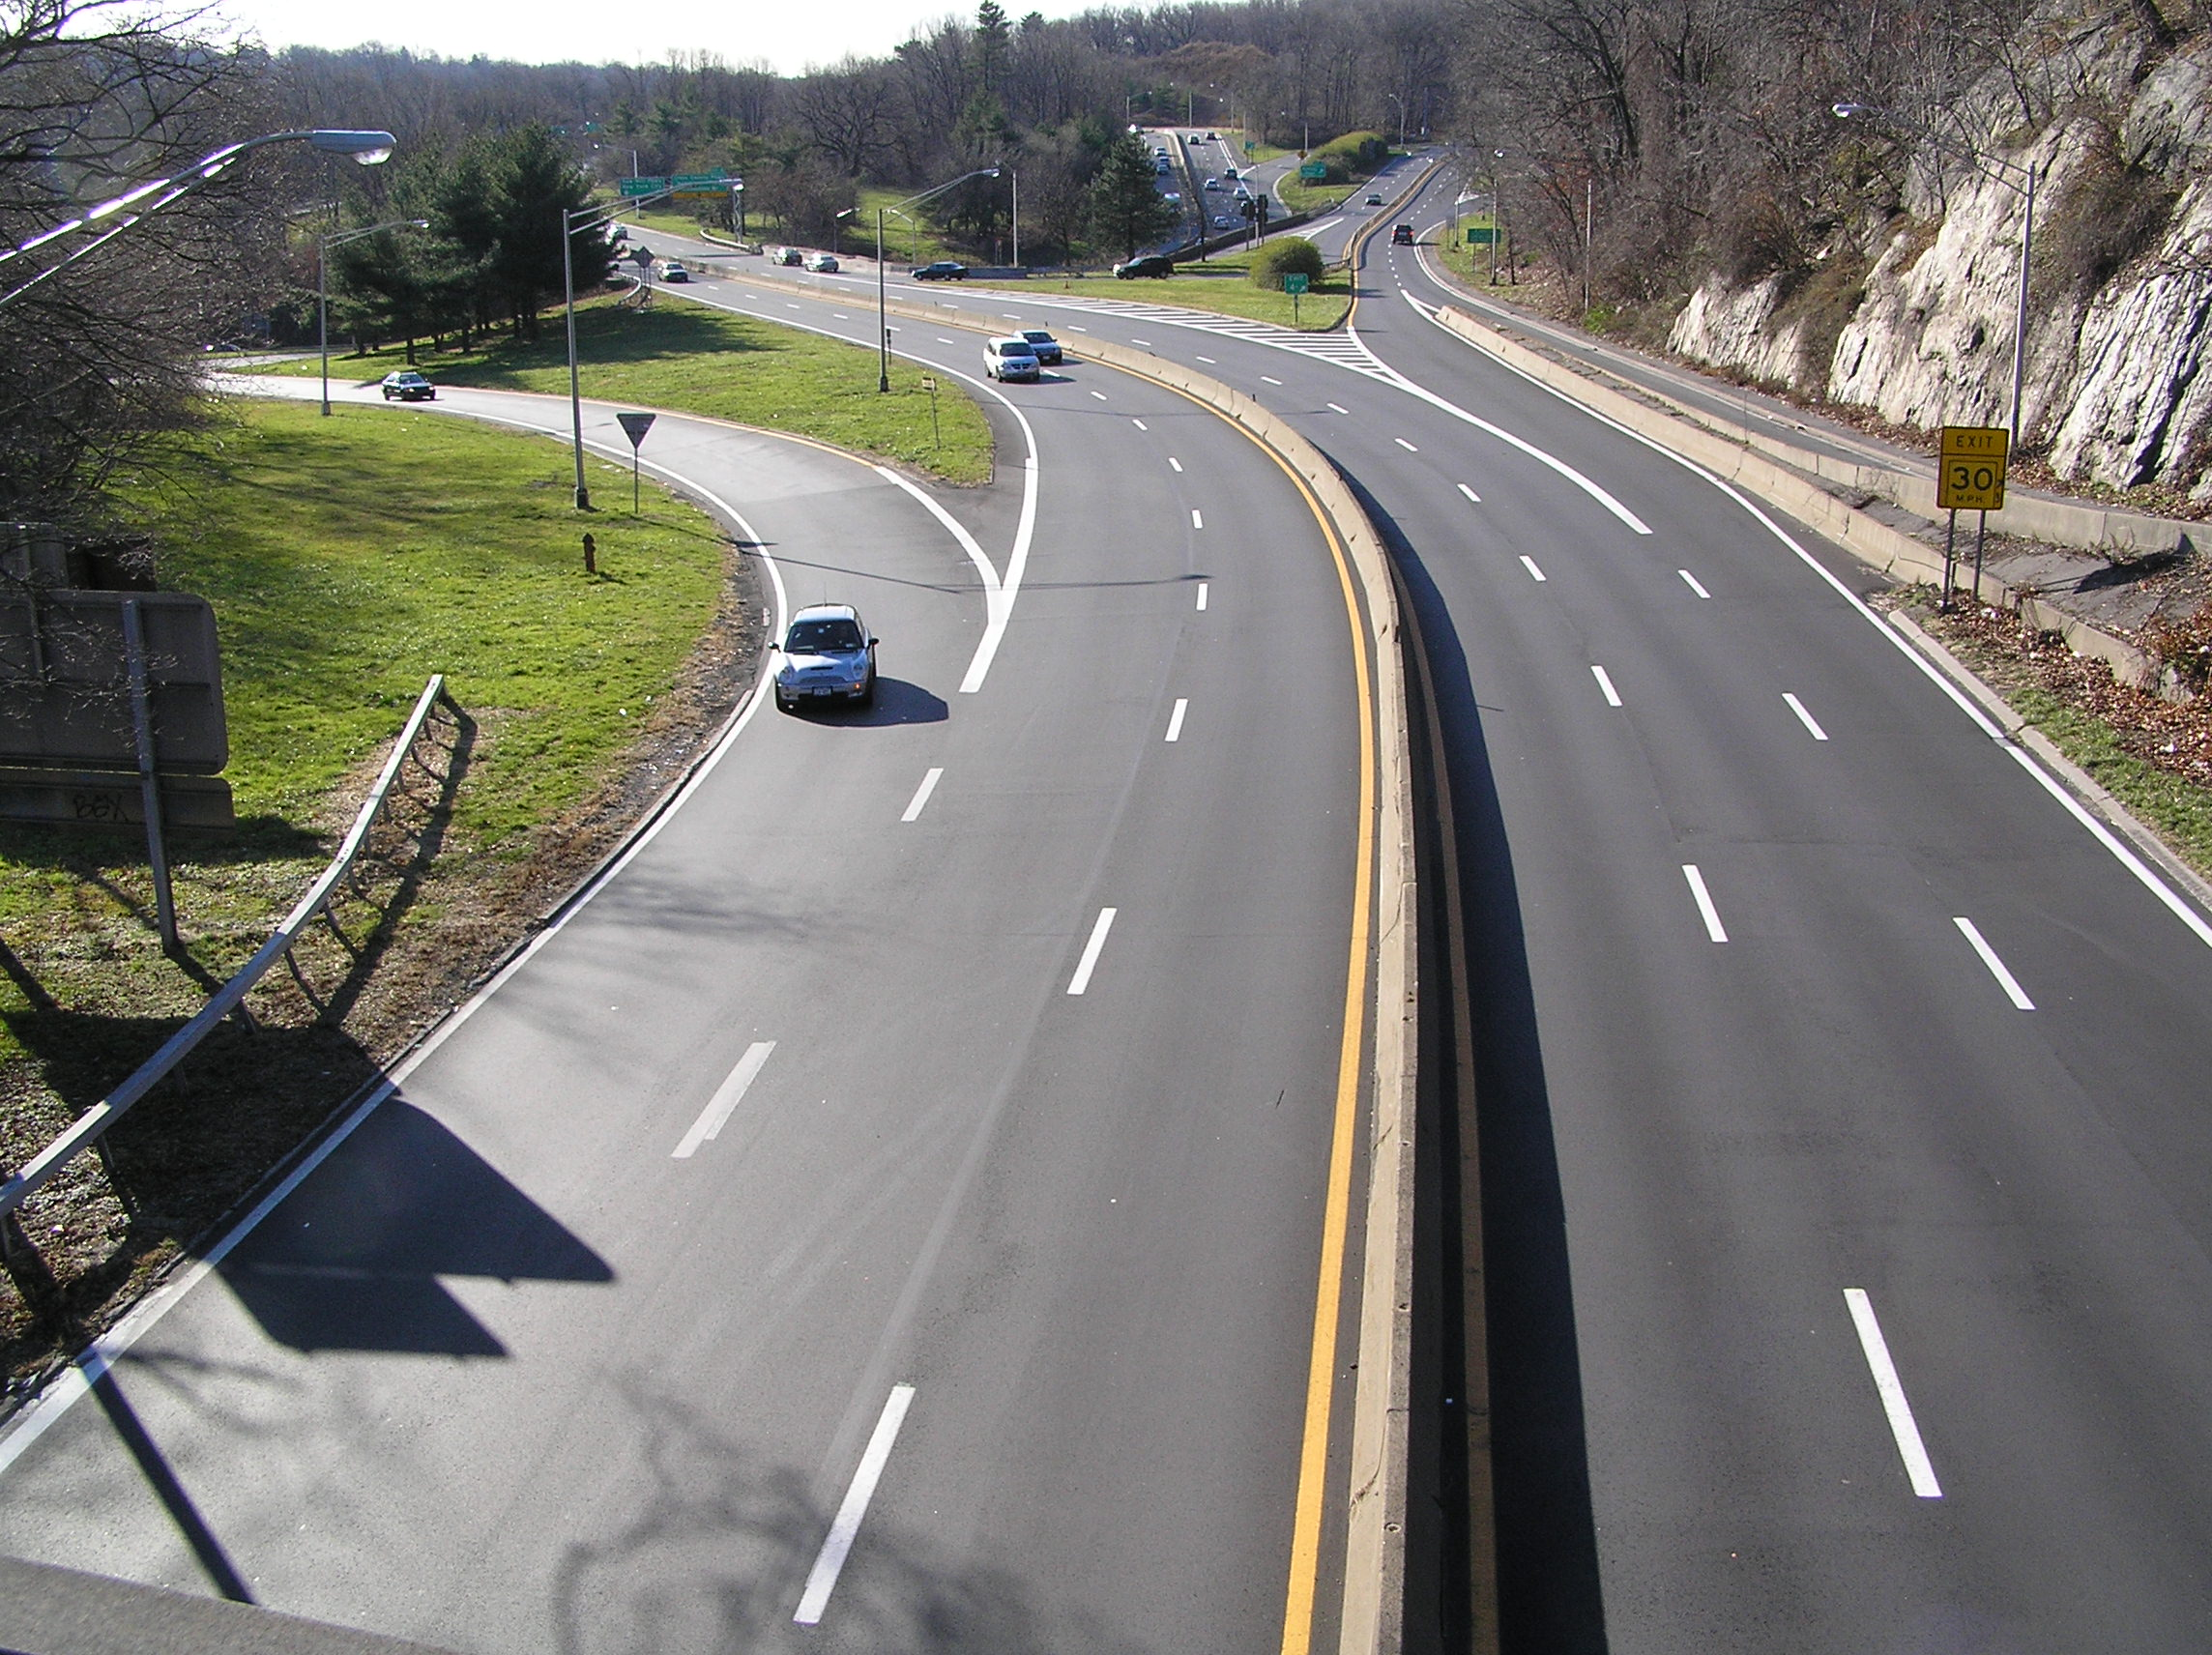 File:Saw Mill Pkwy in Yonkers NY.jpg - Wikimedia Commons